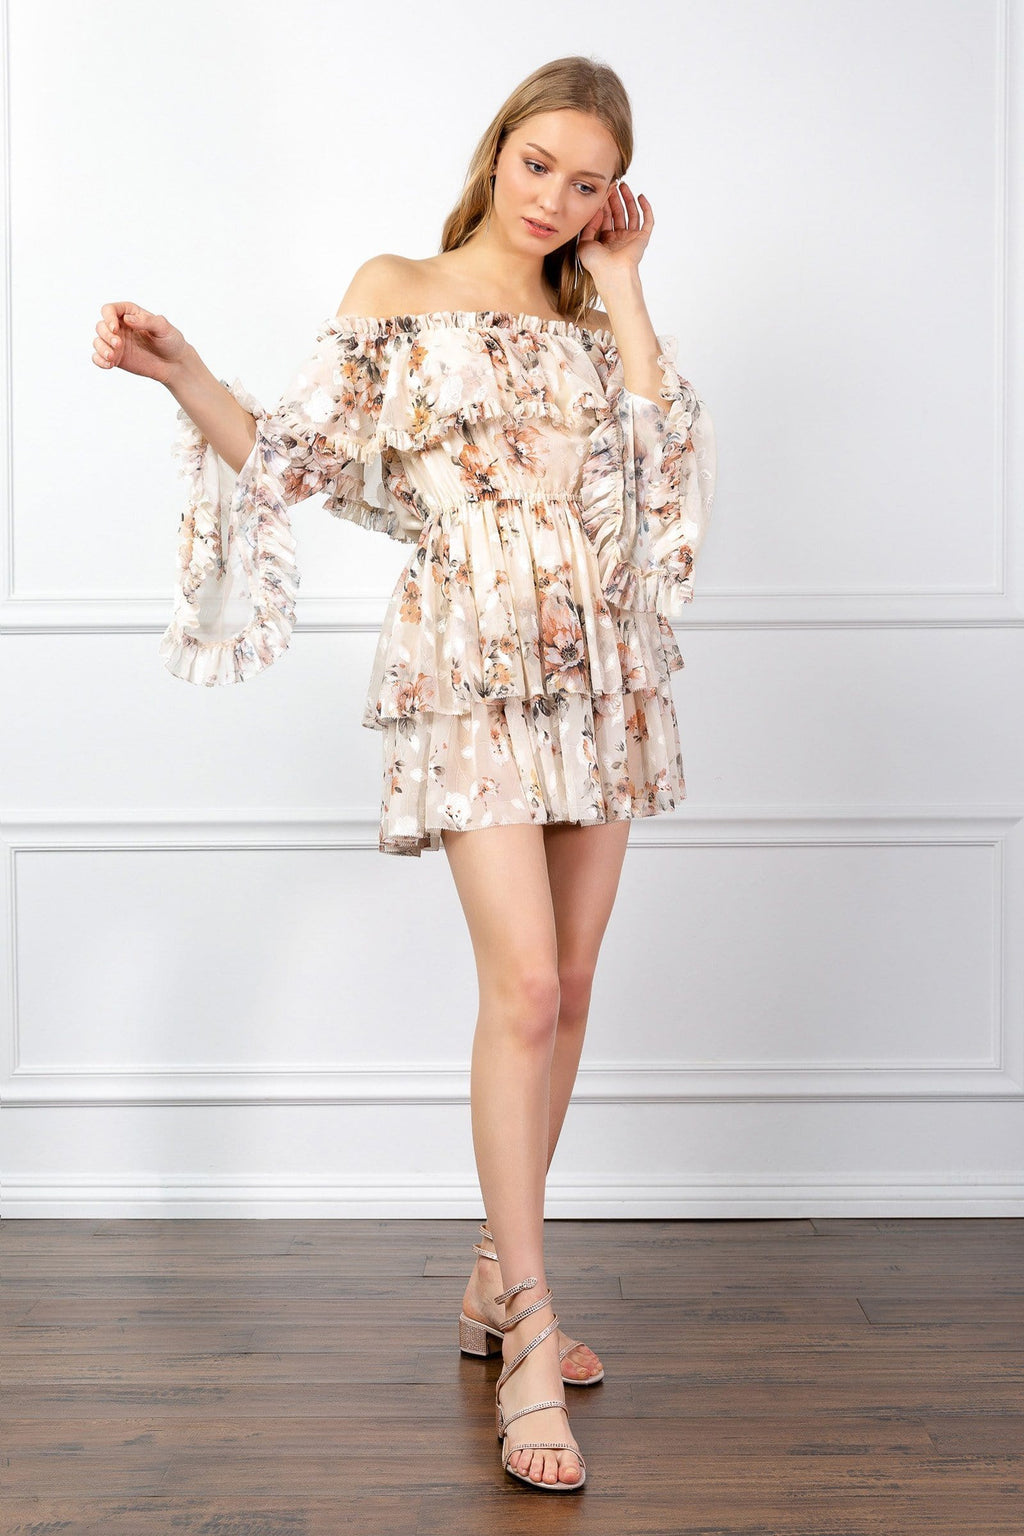 Ruffled floral off the shoulder mini dress | J.ING women's apparel